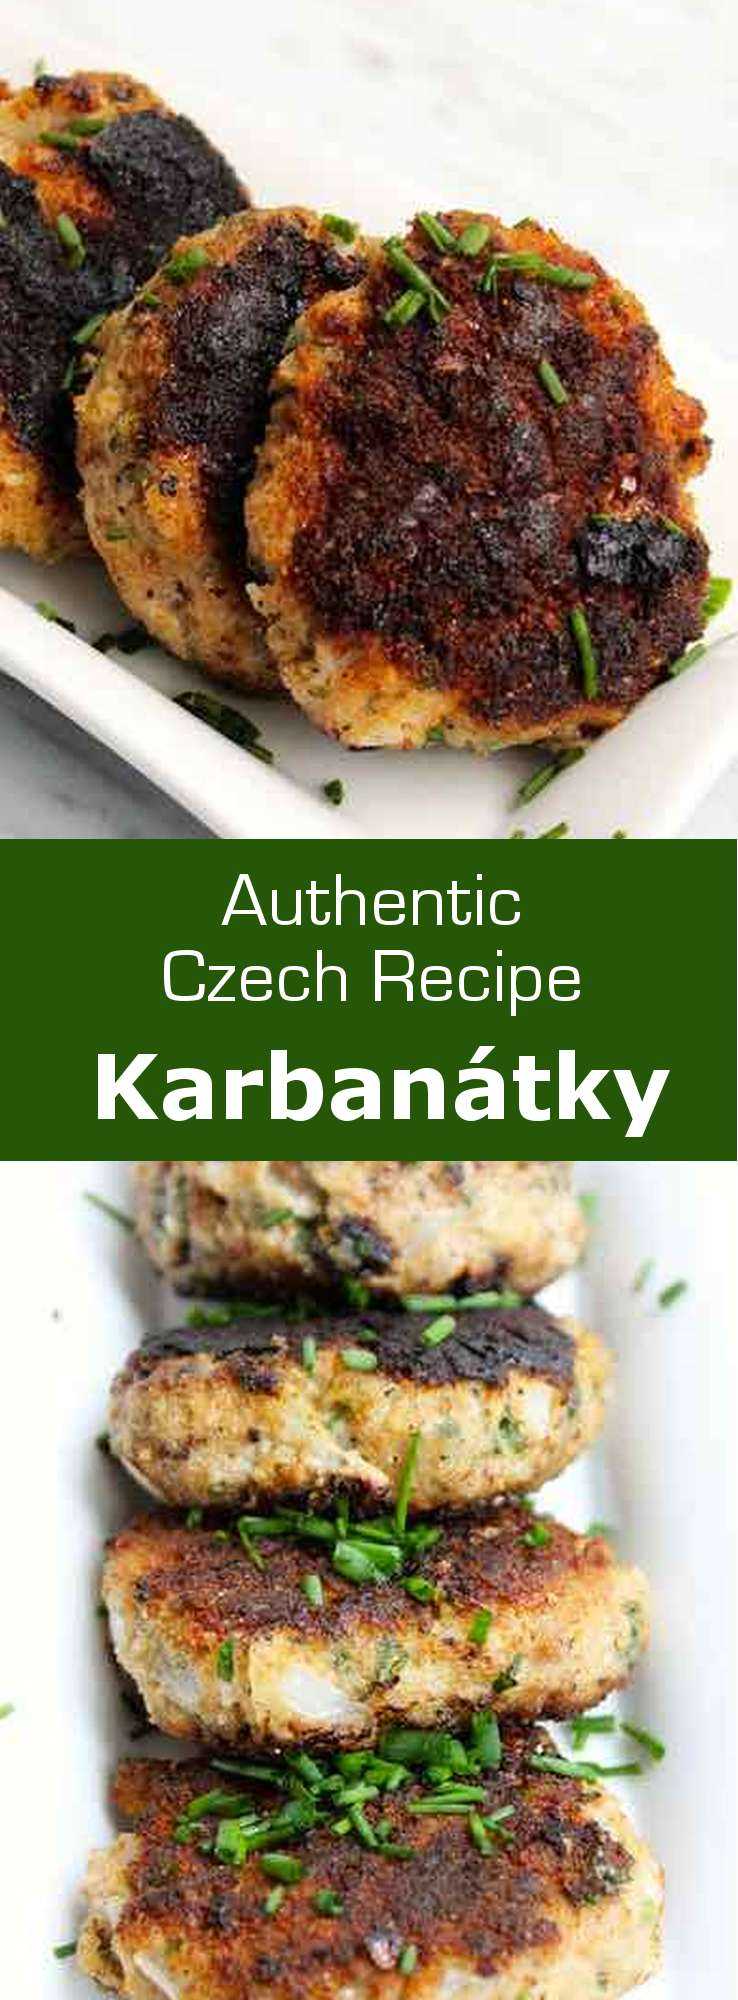 Karbanátky (singular: karbanátek) are delicious fried meat patties that are seasoned with marjoram and caraway seeds. In Czech, karbanátek means hamburger or meatball. #CzechRepublic #CzechCuisine #CzechRecipe #Meatballs #WorldCuisine #196flavors